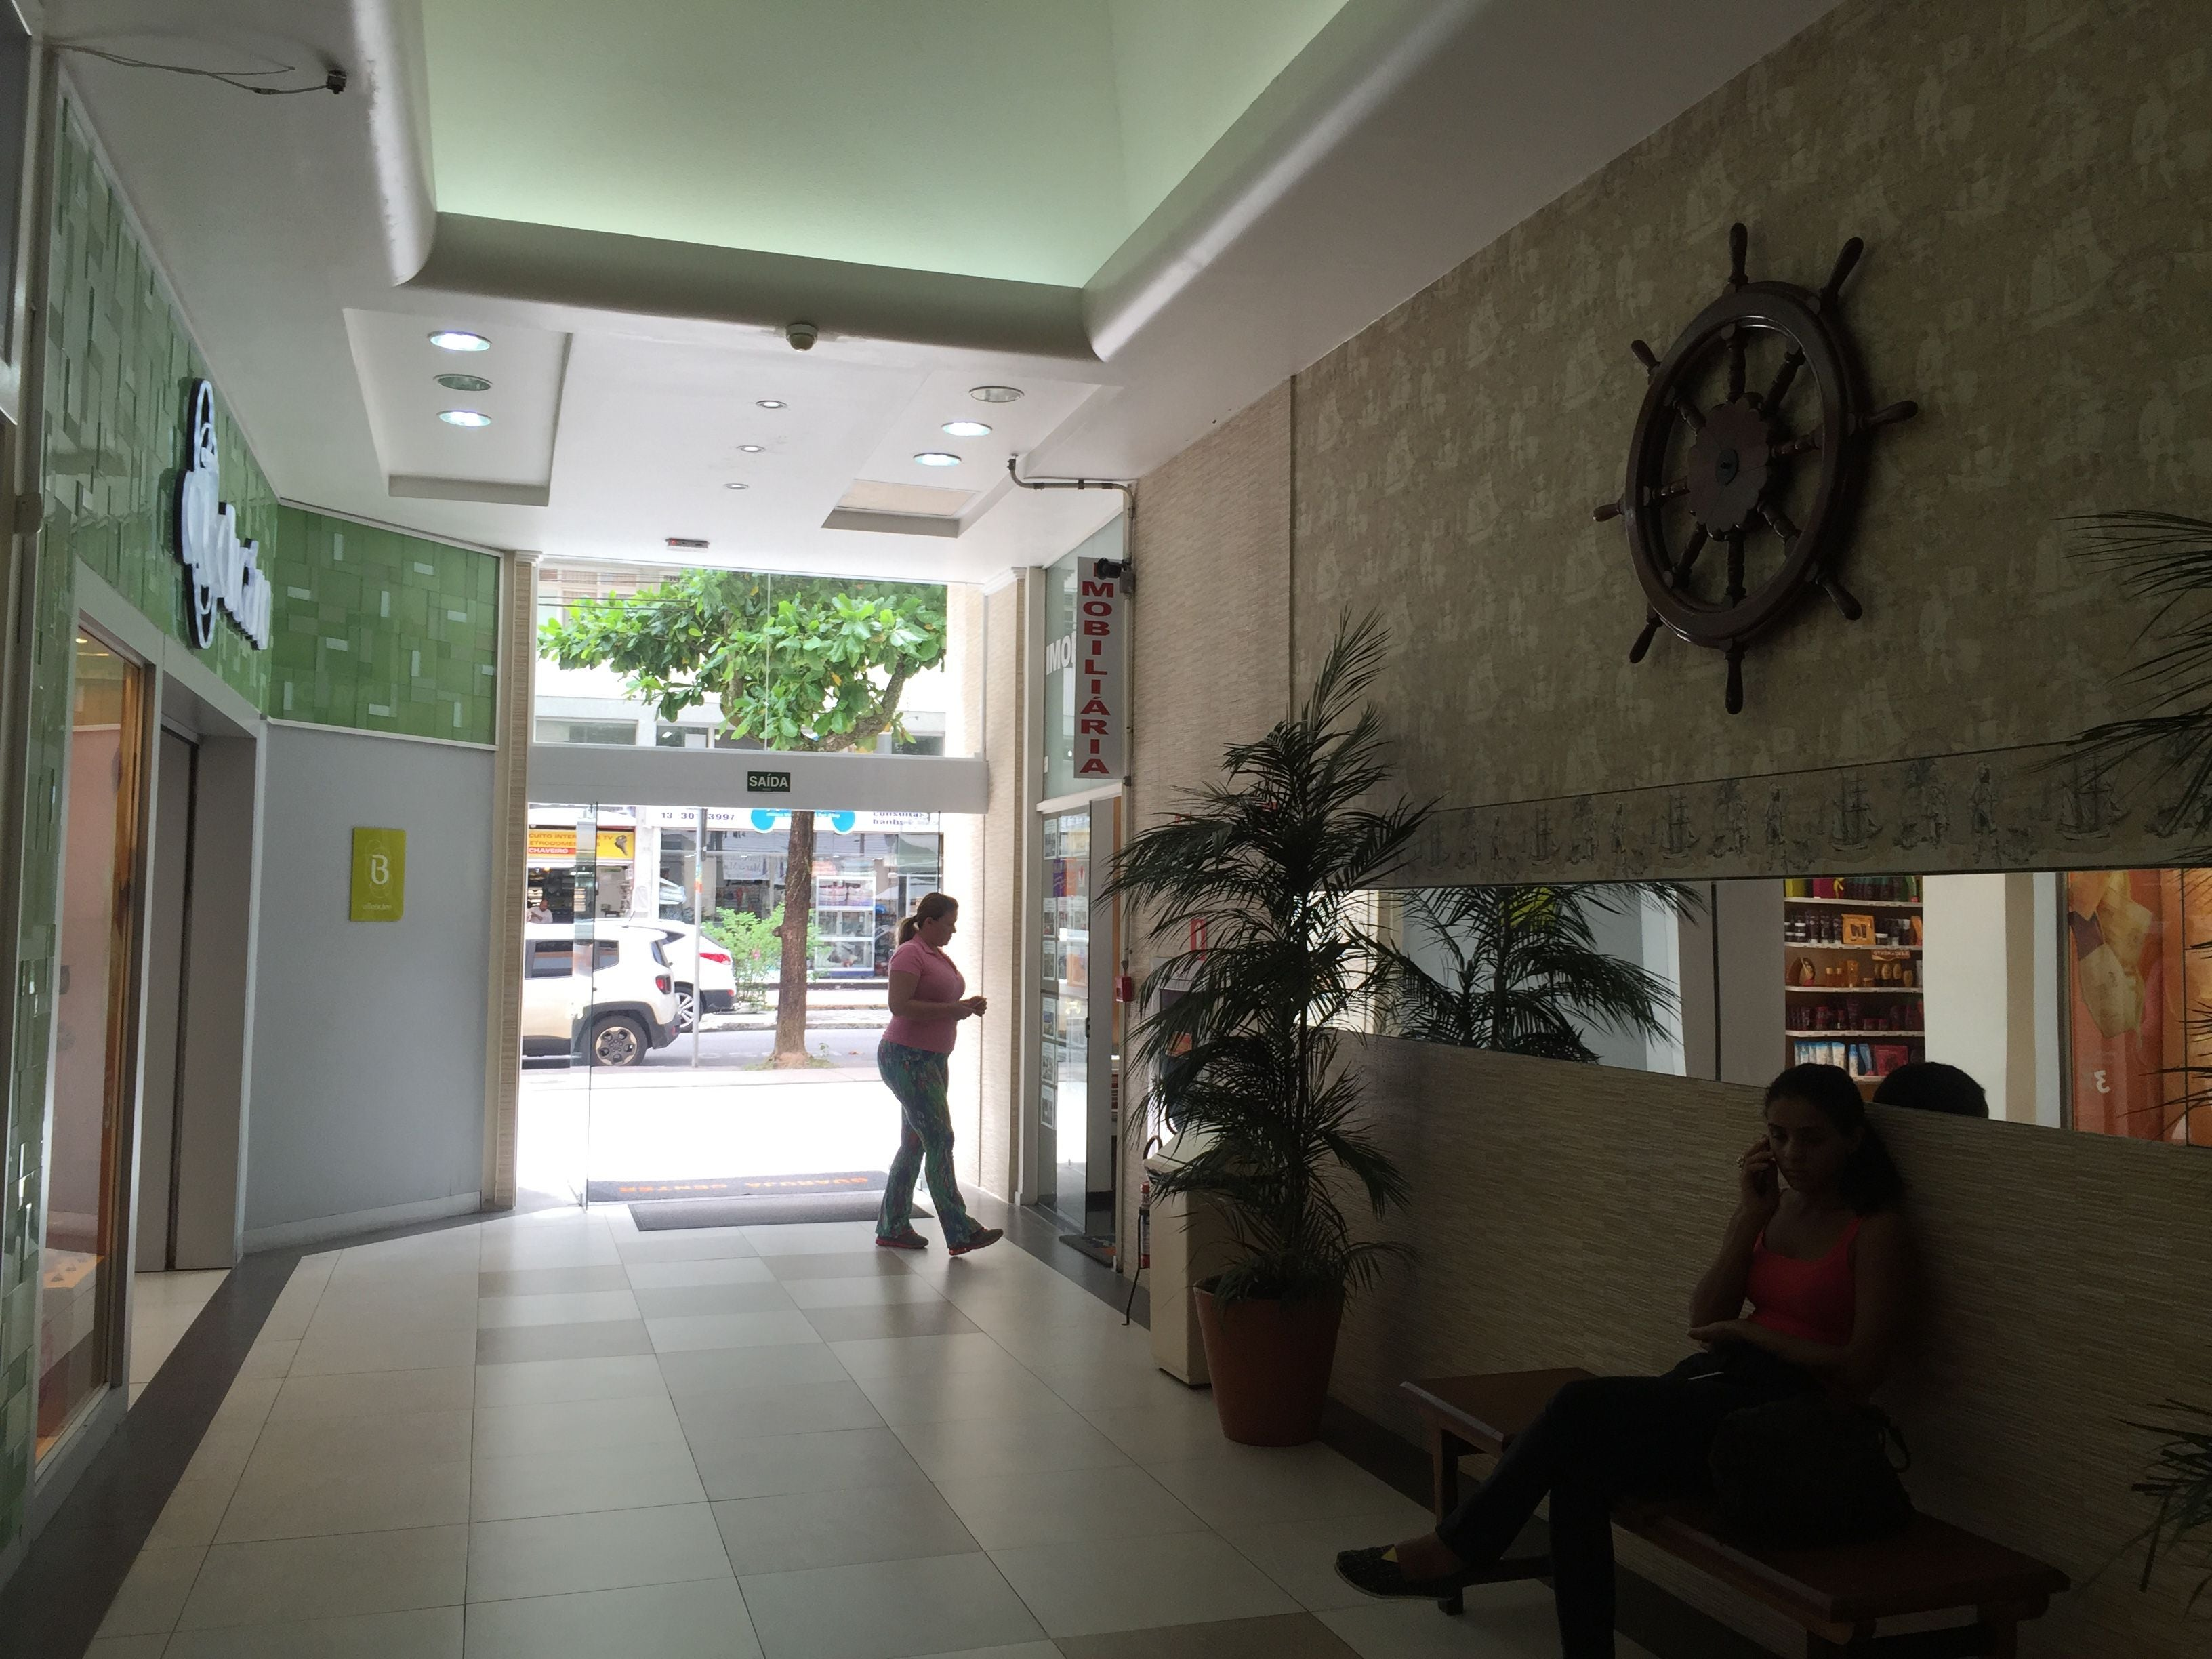 Room in Guarujá Center Shopping